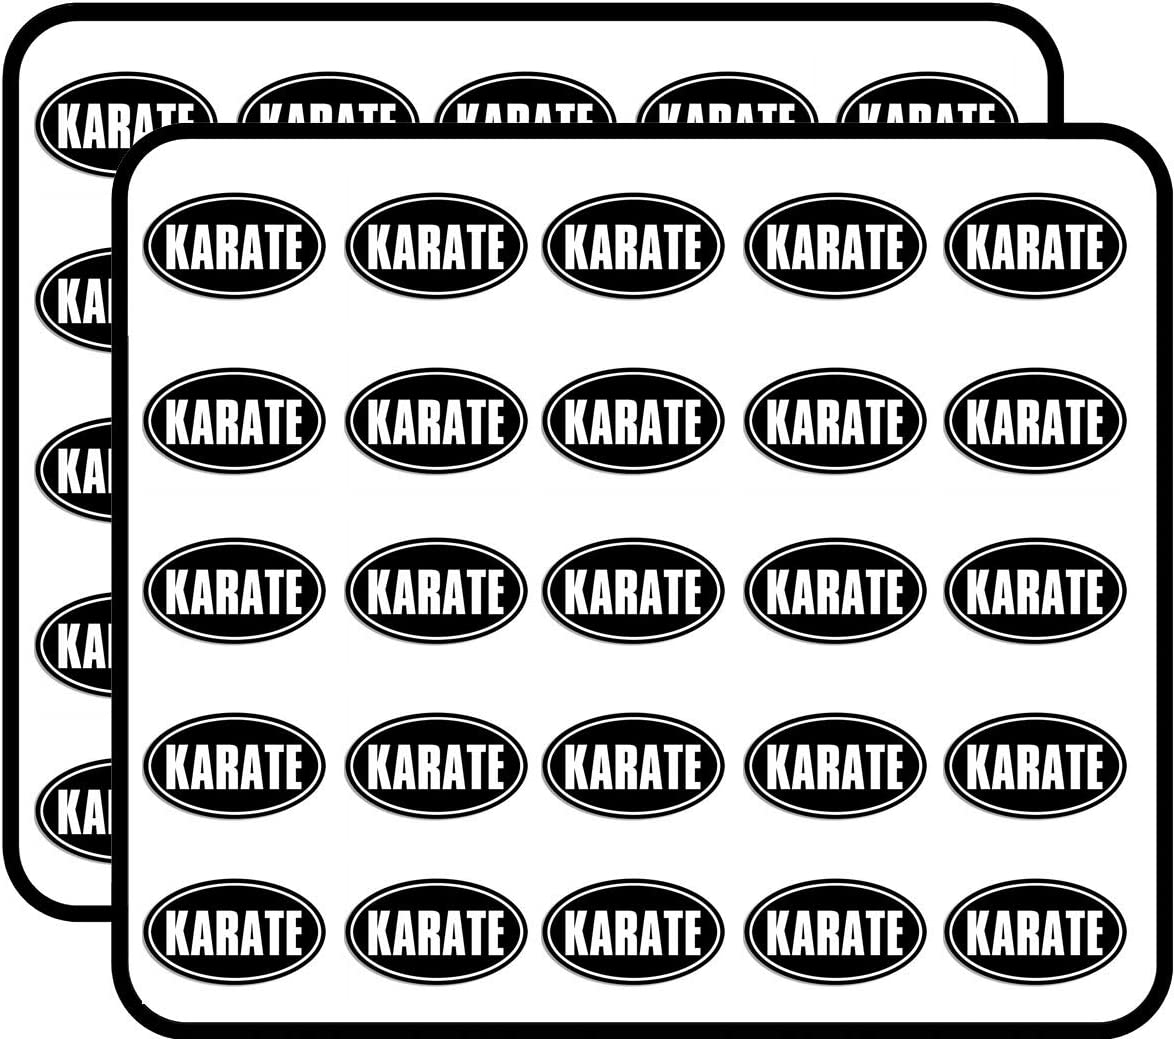 Black Oval Karate (Martial Arts Fight MMA) Sticker for Scrapbooking, Calendars, Arts, Kids DIY Crafts, Album, Bullet Journals 50 Pack